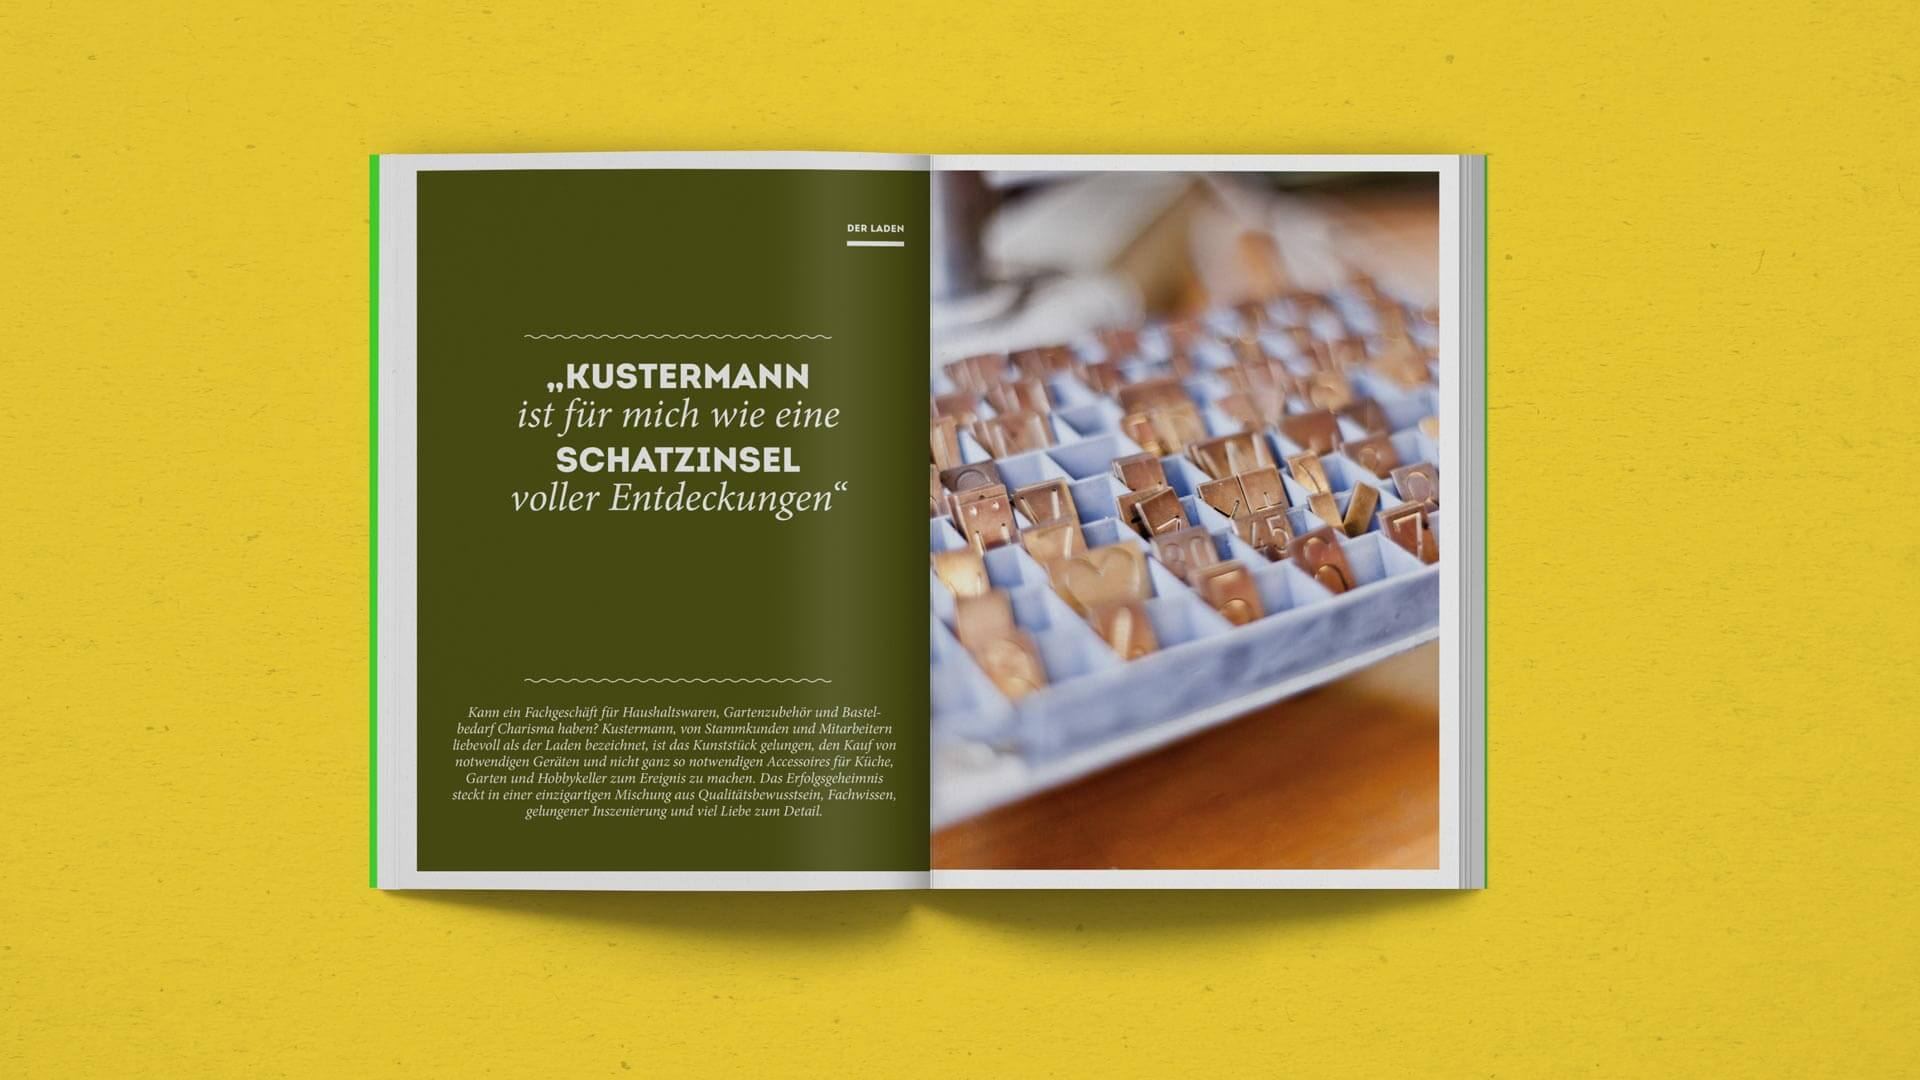 Title Spread of the Store Chapter in the Kustermann Brochure